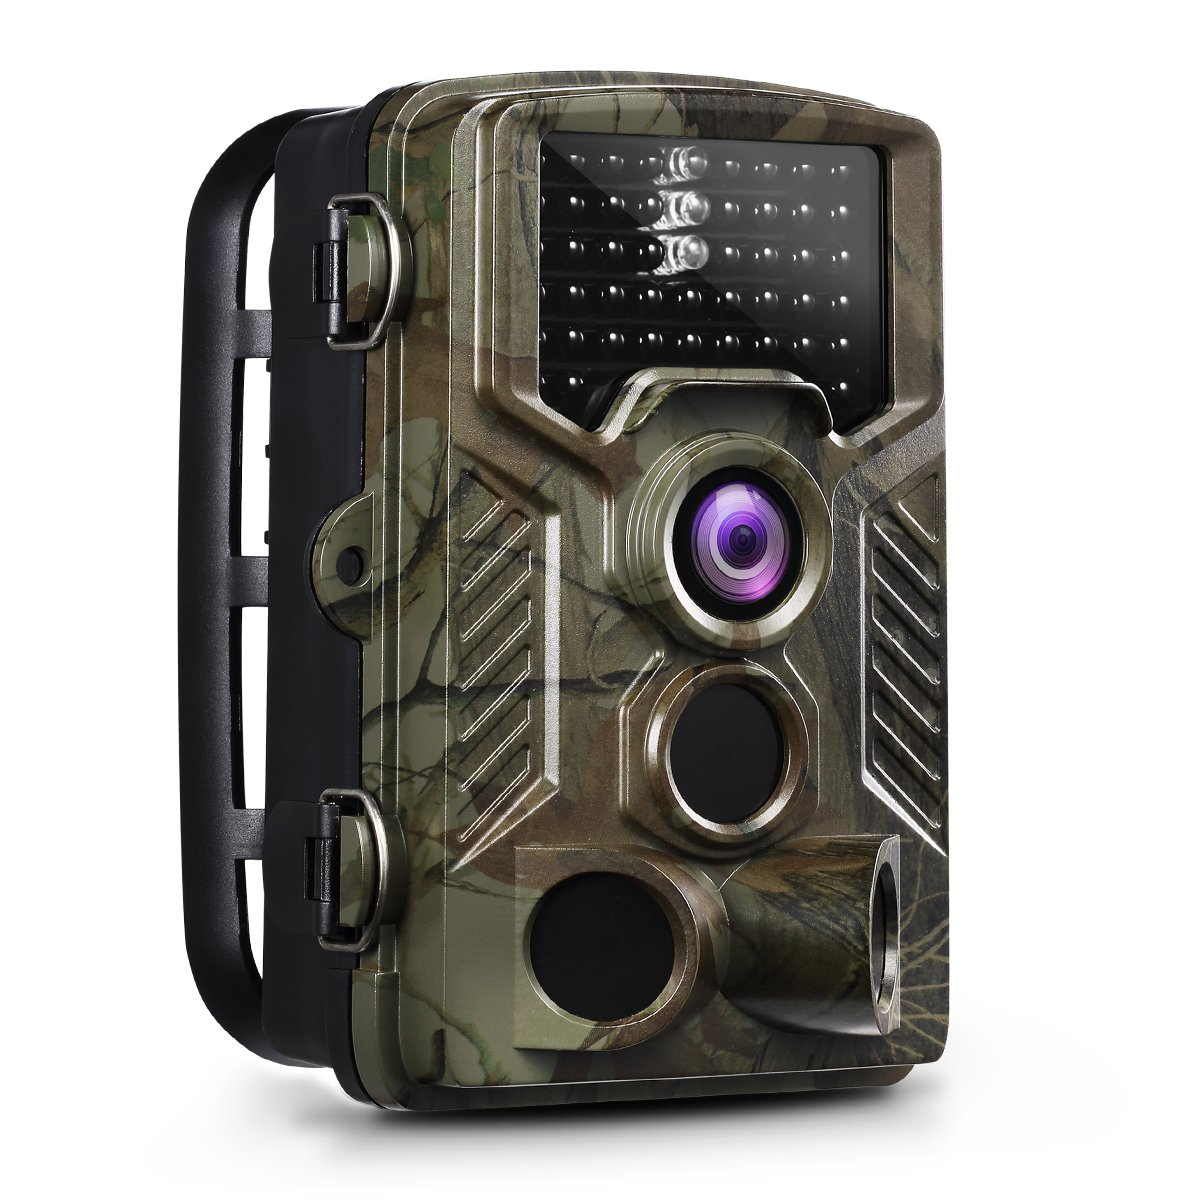 OGL Trail Camera 16MP 1080P 2.4 LCD Game Hunting Camera 120 PIR Sensor 0.2s Fasts Trigger Night Vision up to 65ft 20m with 46Pcs 850nm Infrared LED IP56 Waterproof 32GB for Wildlife Scouting